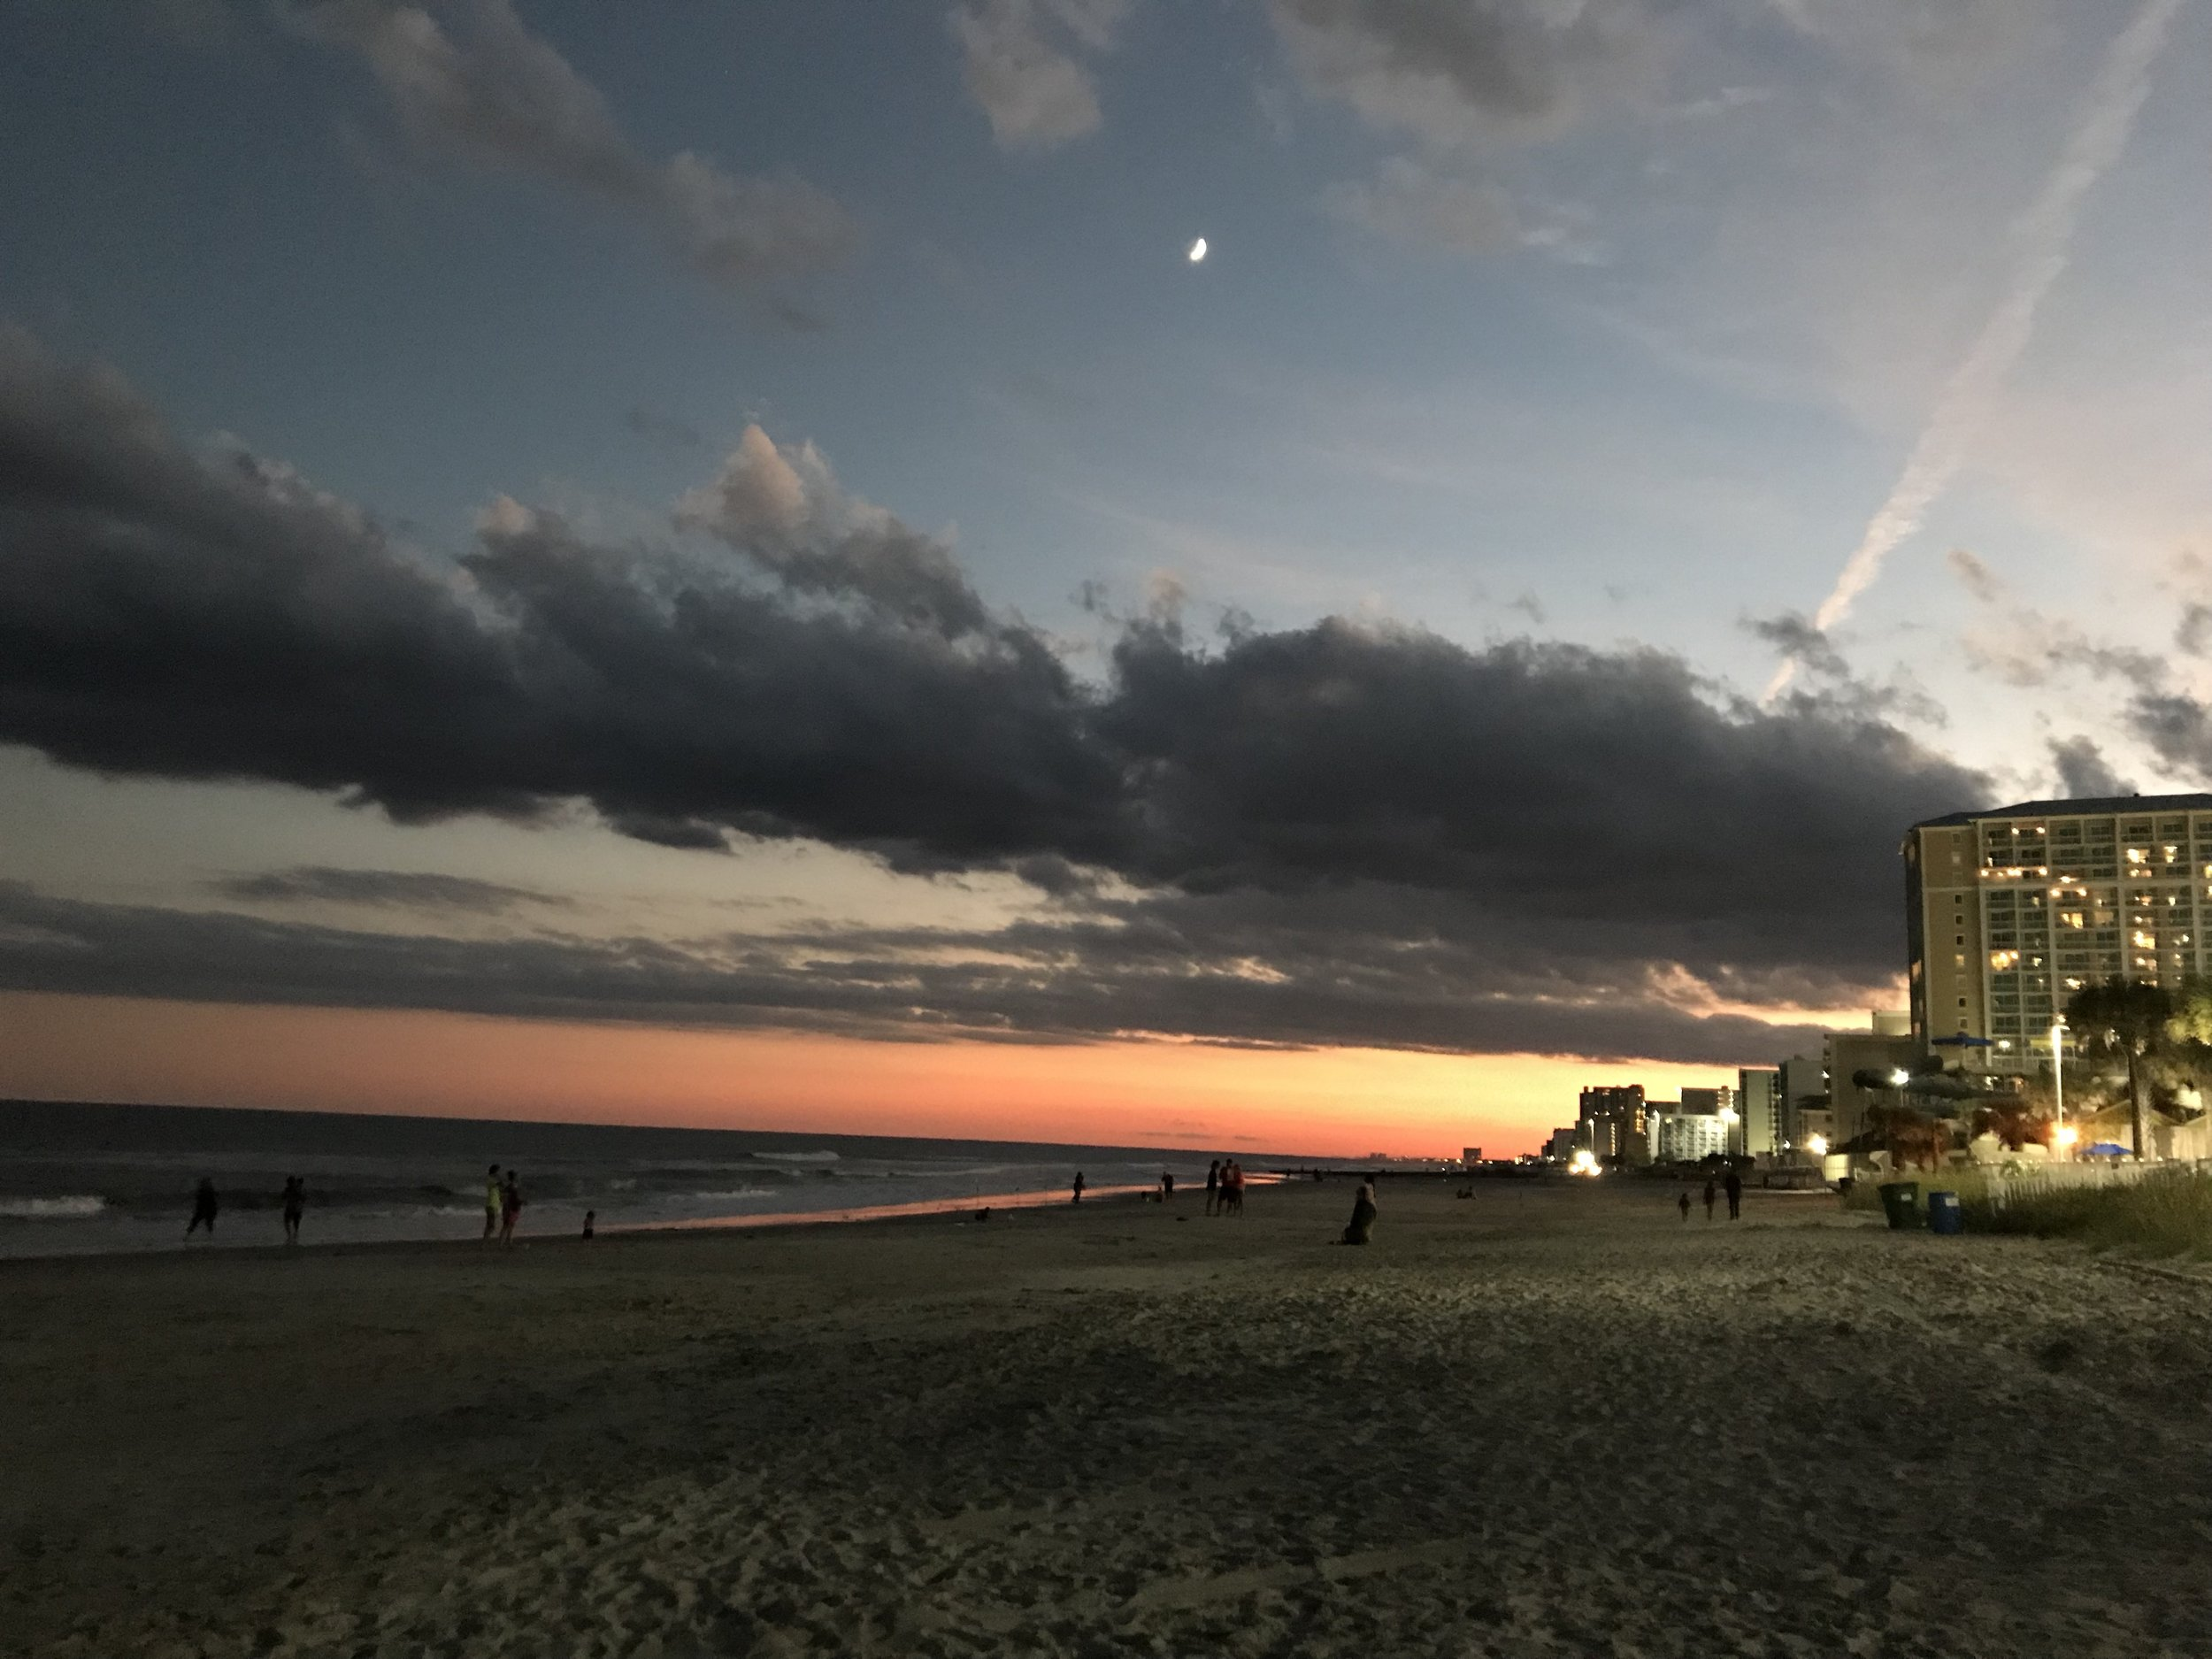 Myrtle Beach at sunset.